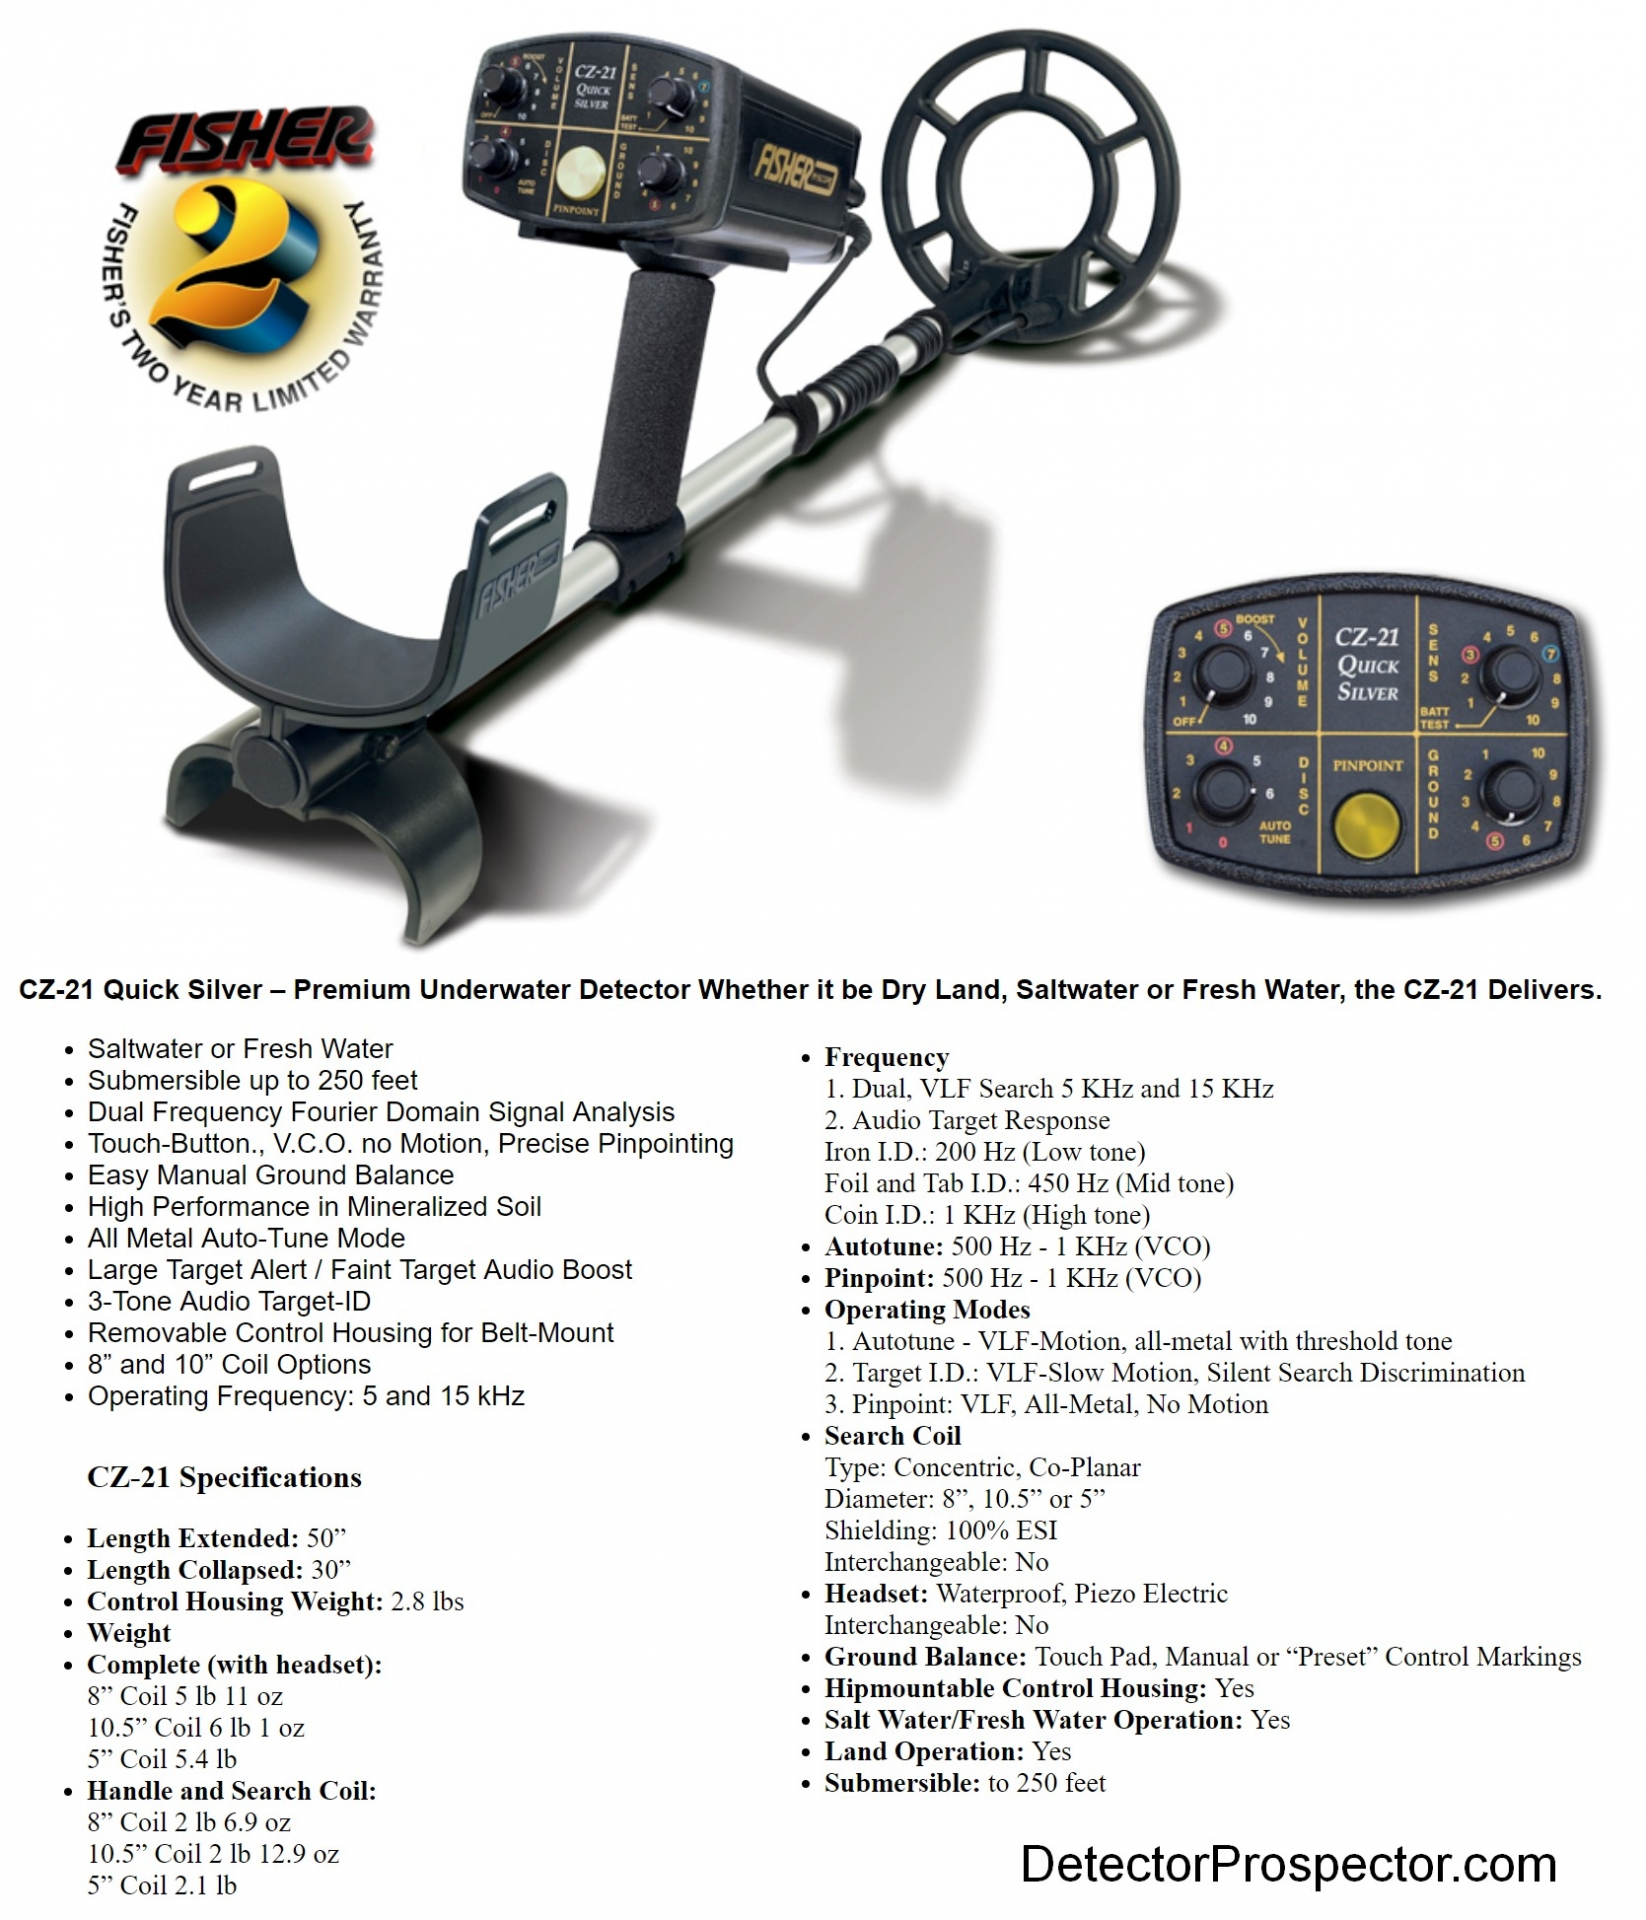 fisher-cz-21-underwater-metal-detector-specifications.jpg